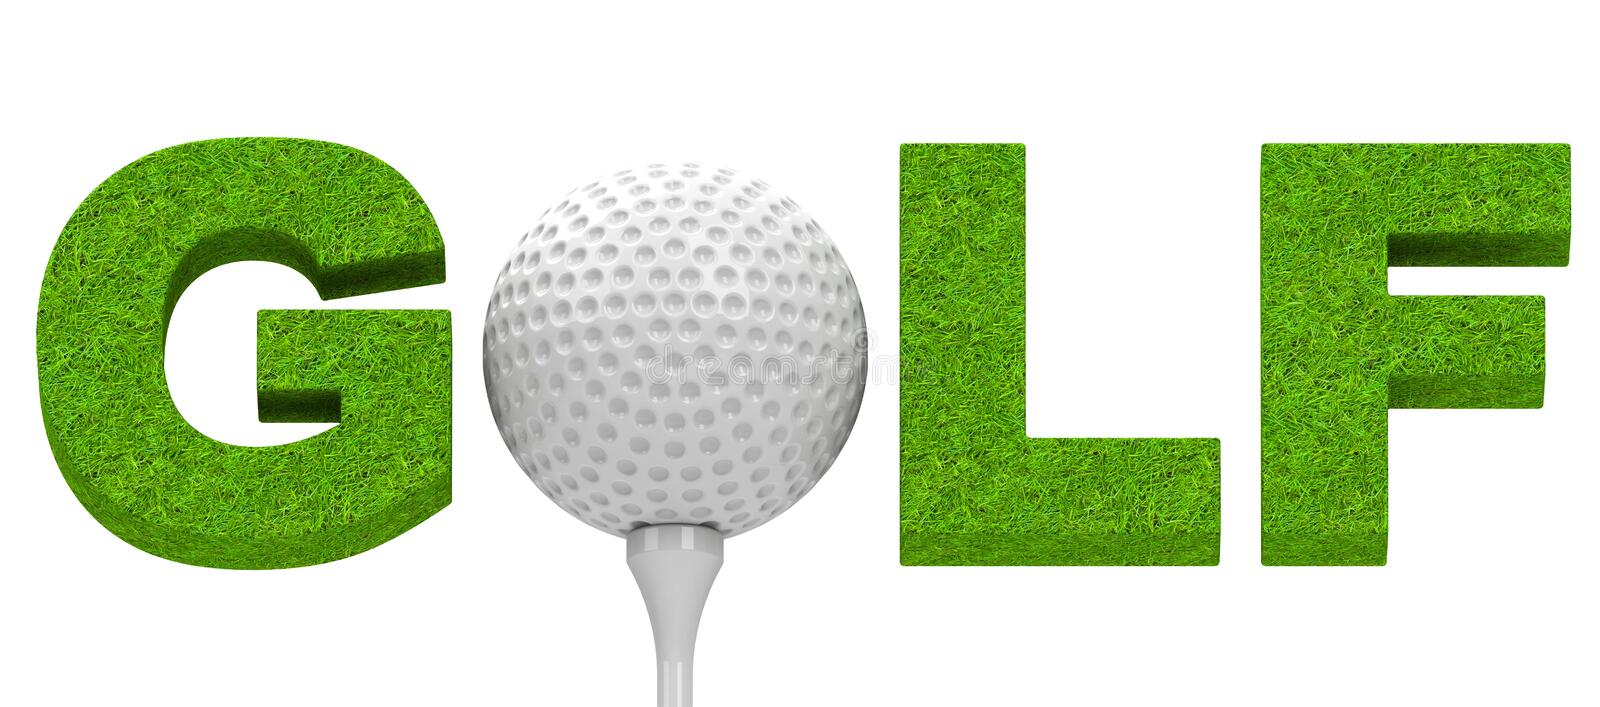 Golf. 3d generated picture of a golf ball, a golf tee and the word golf royalty free illustration